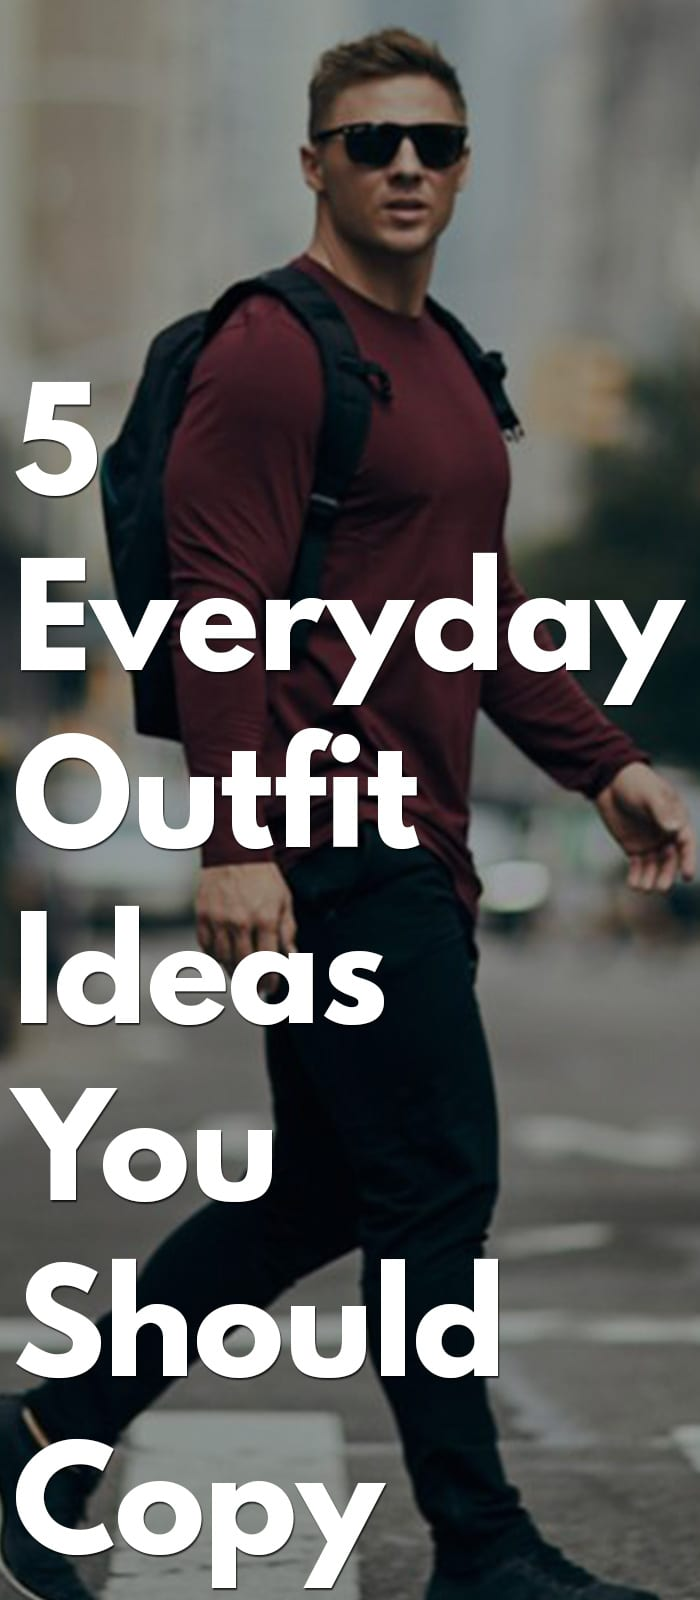 5 Must Have Everyday Outfit- Ripped Jeans, Jackets, Chinos, Shirt, Etc